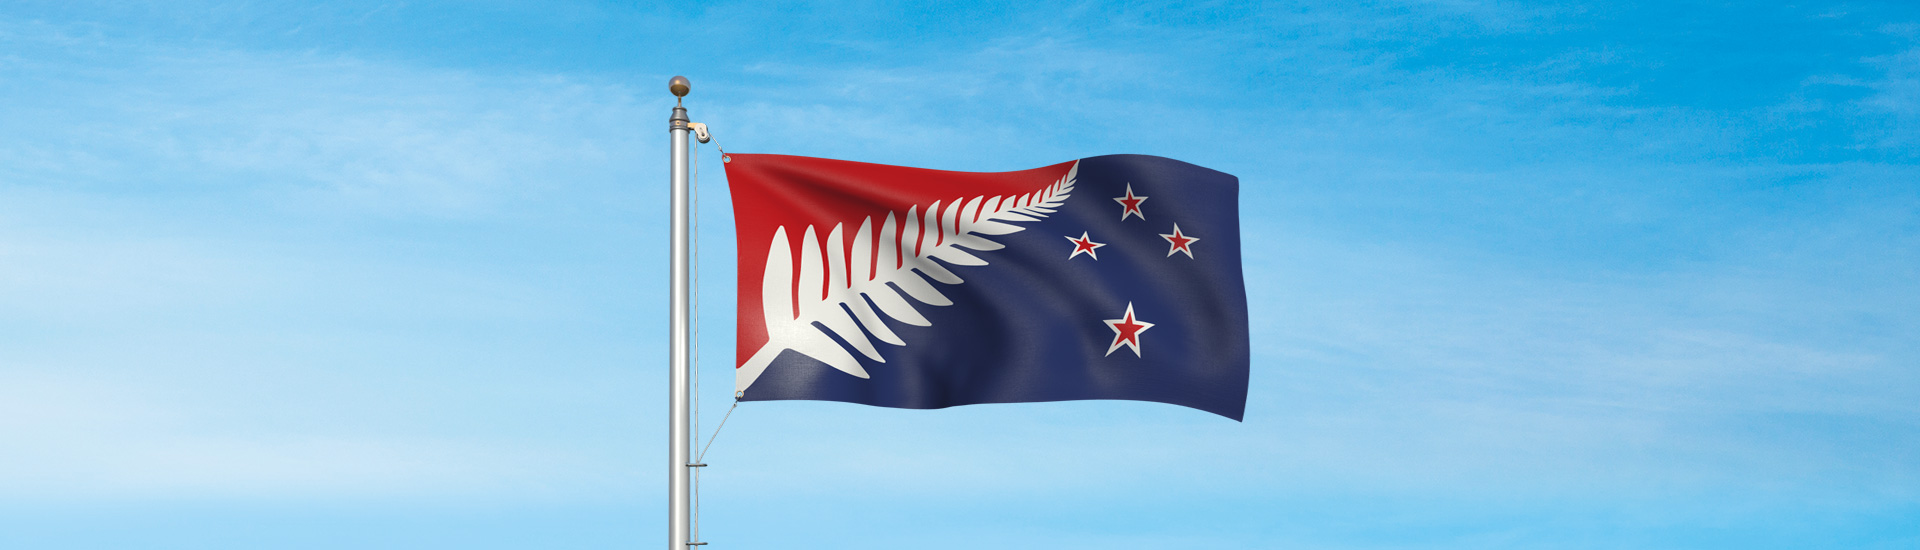 Silver Fern (Red, White and Blue) de Kyle Lockwood